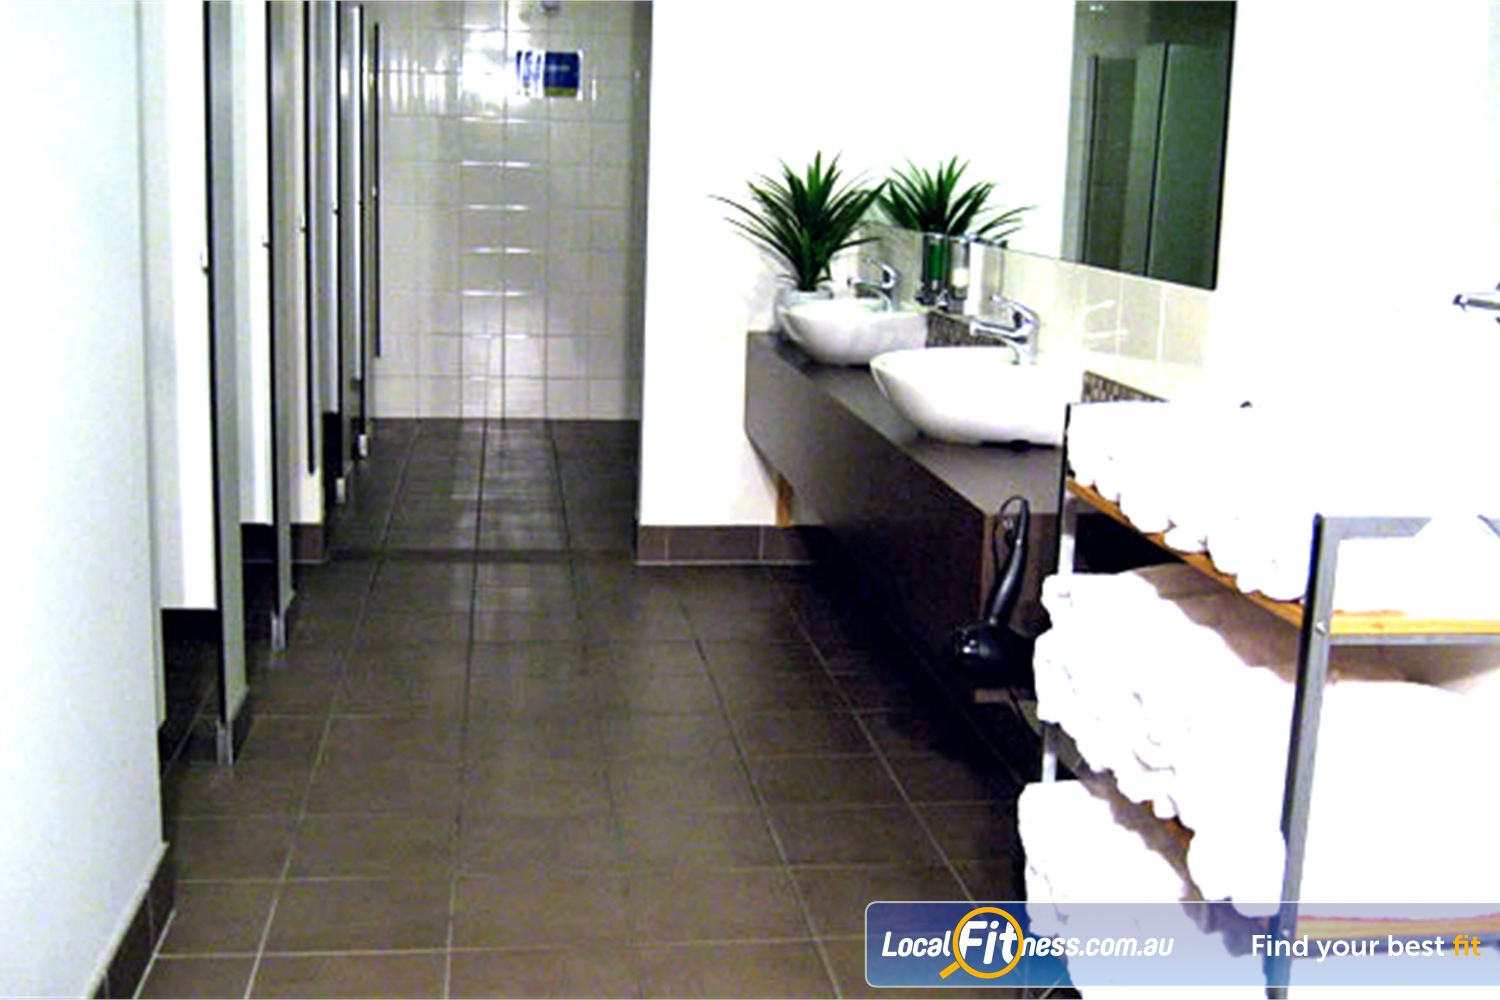 The Toorak Health Club Near Kooyong Clean and pristine change room facilities.